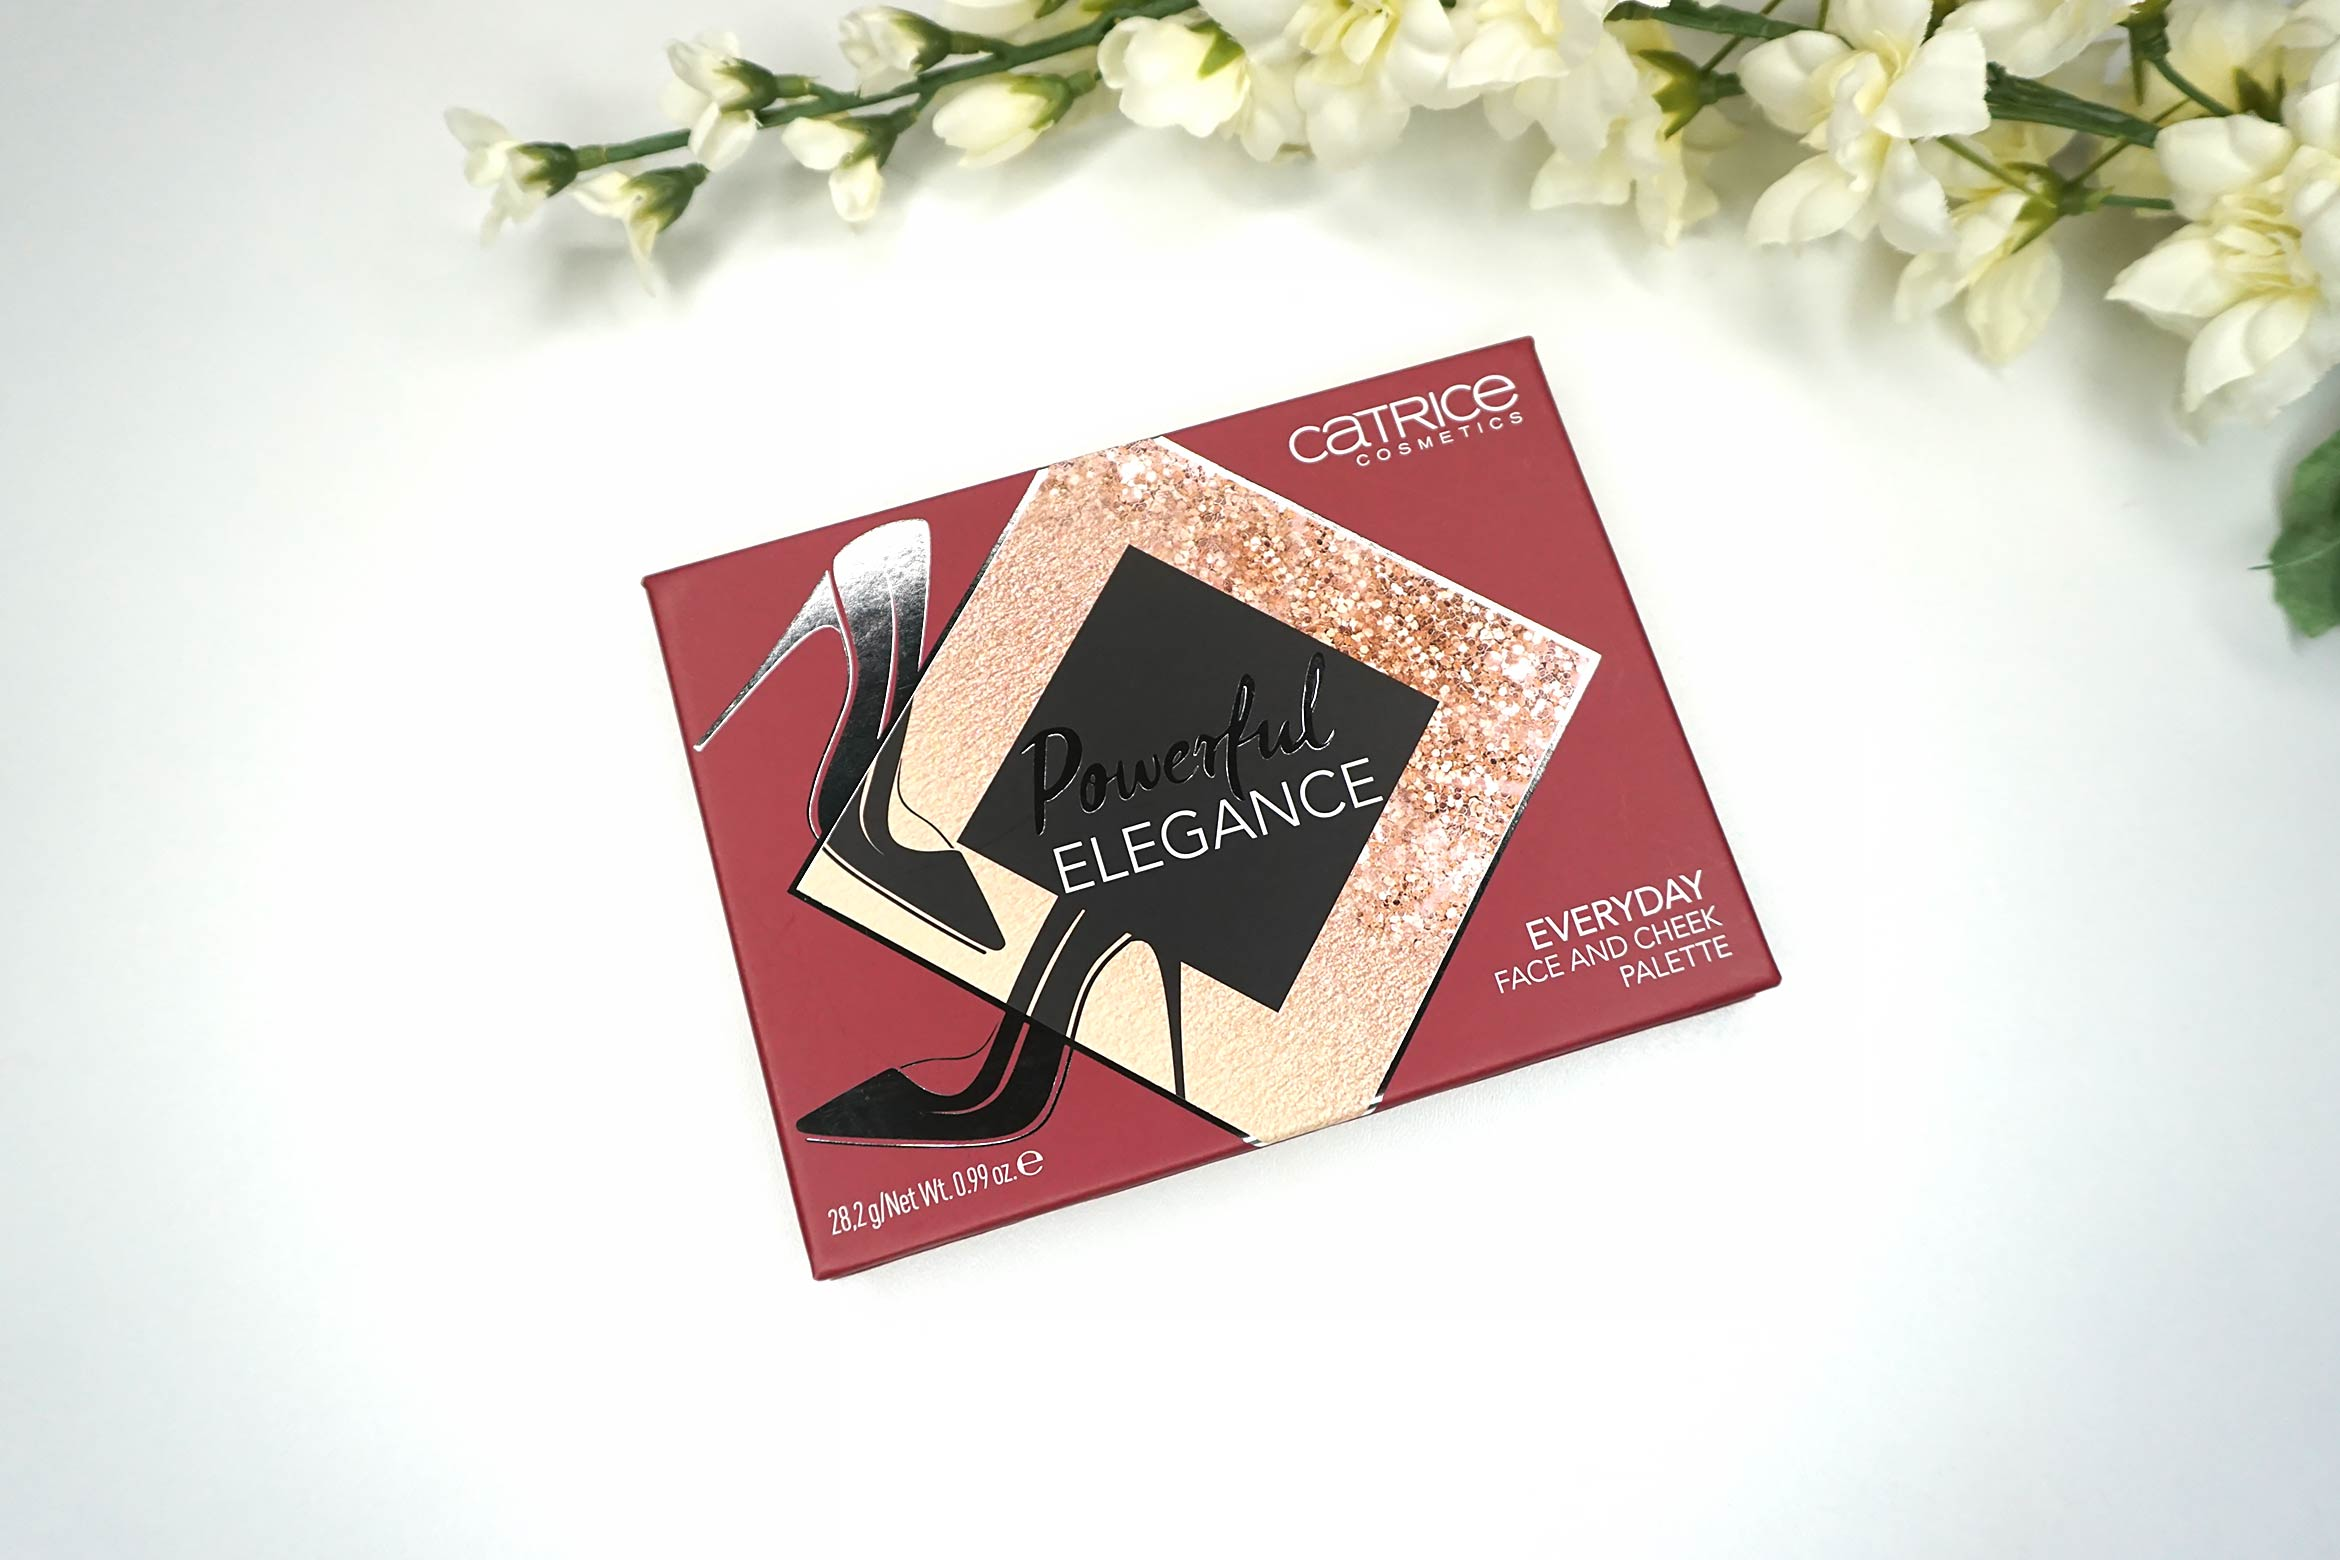 catrice-powerful-elegance-everyday-face-and-cheek-palette-review